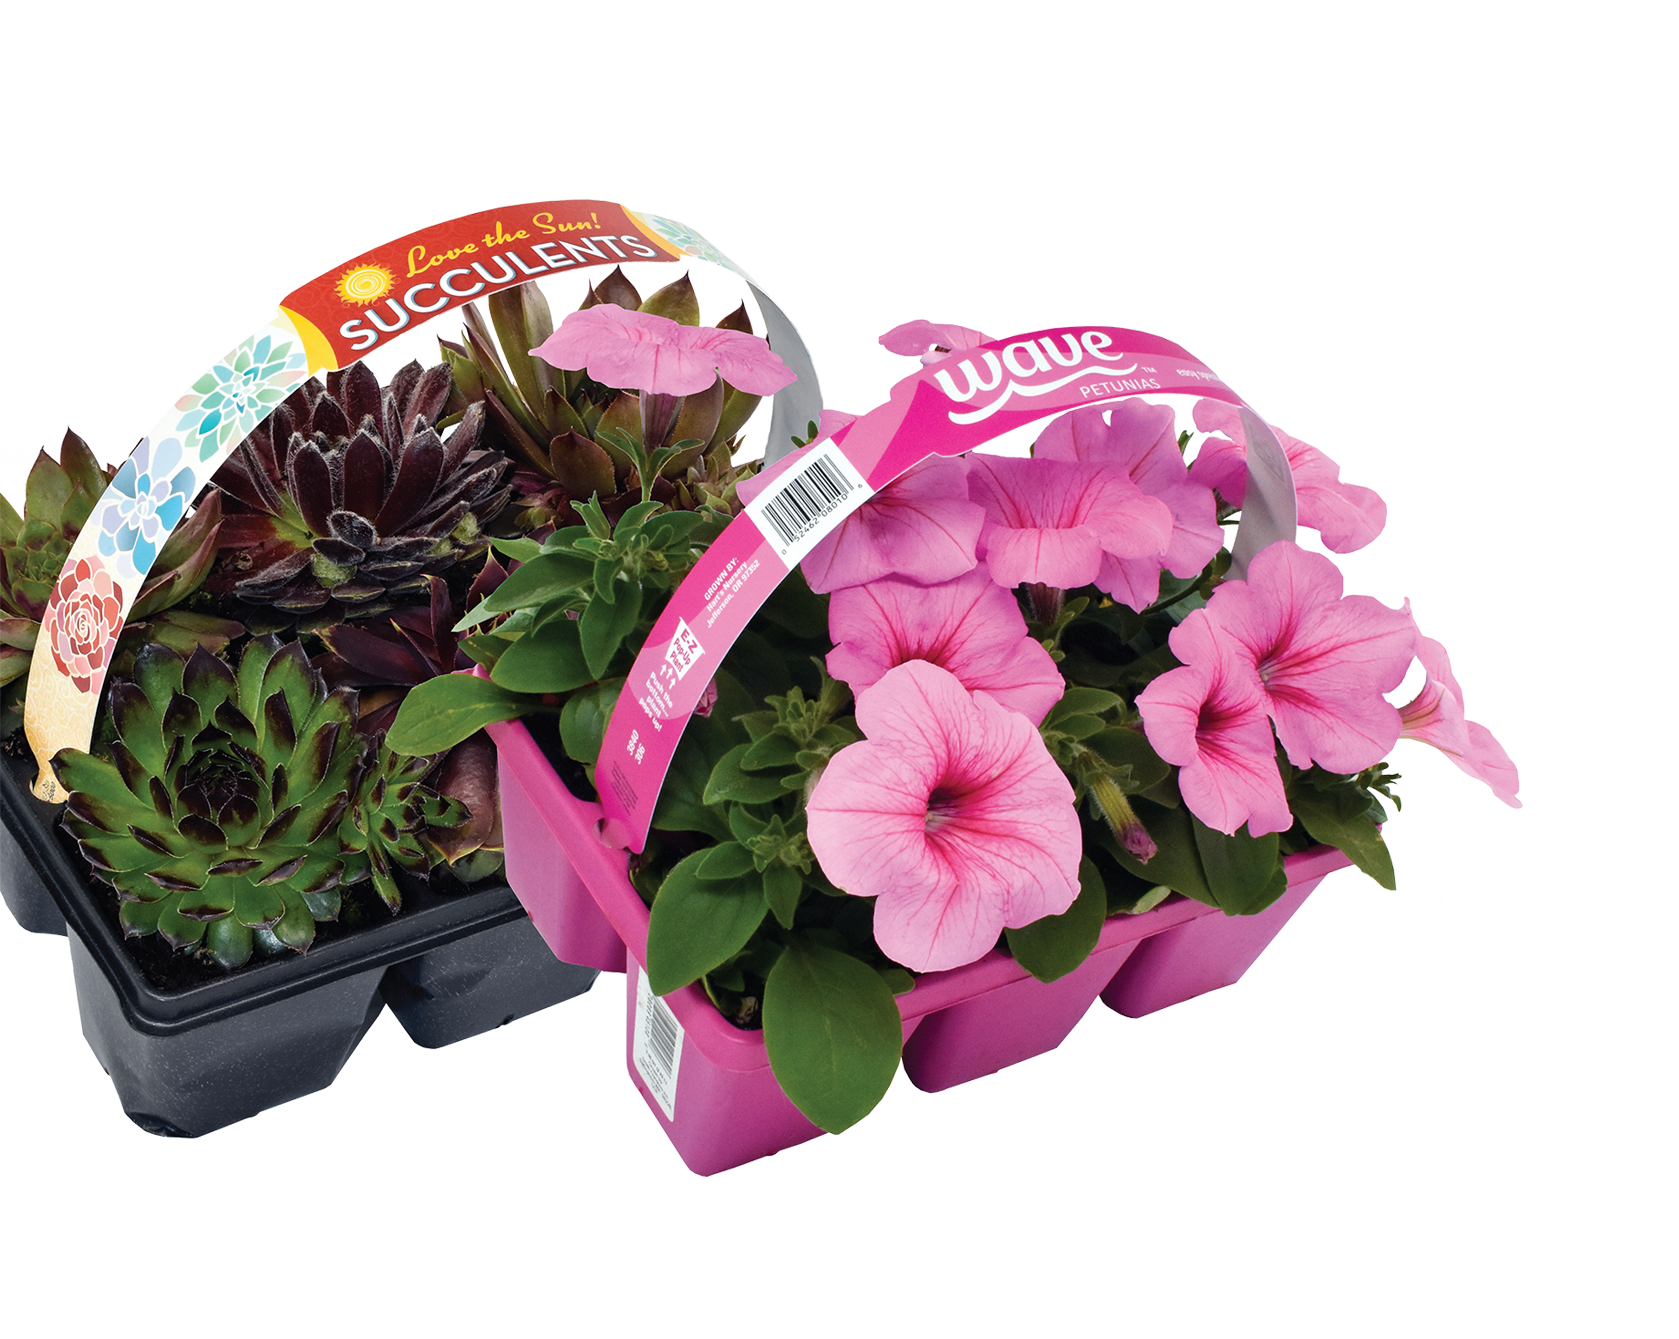 Macore- Stakes, Tags & Labels for the Horticulture Industry